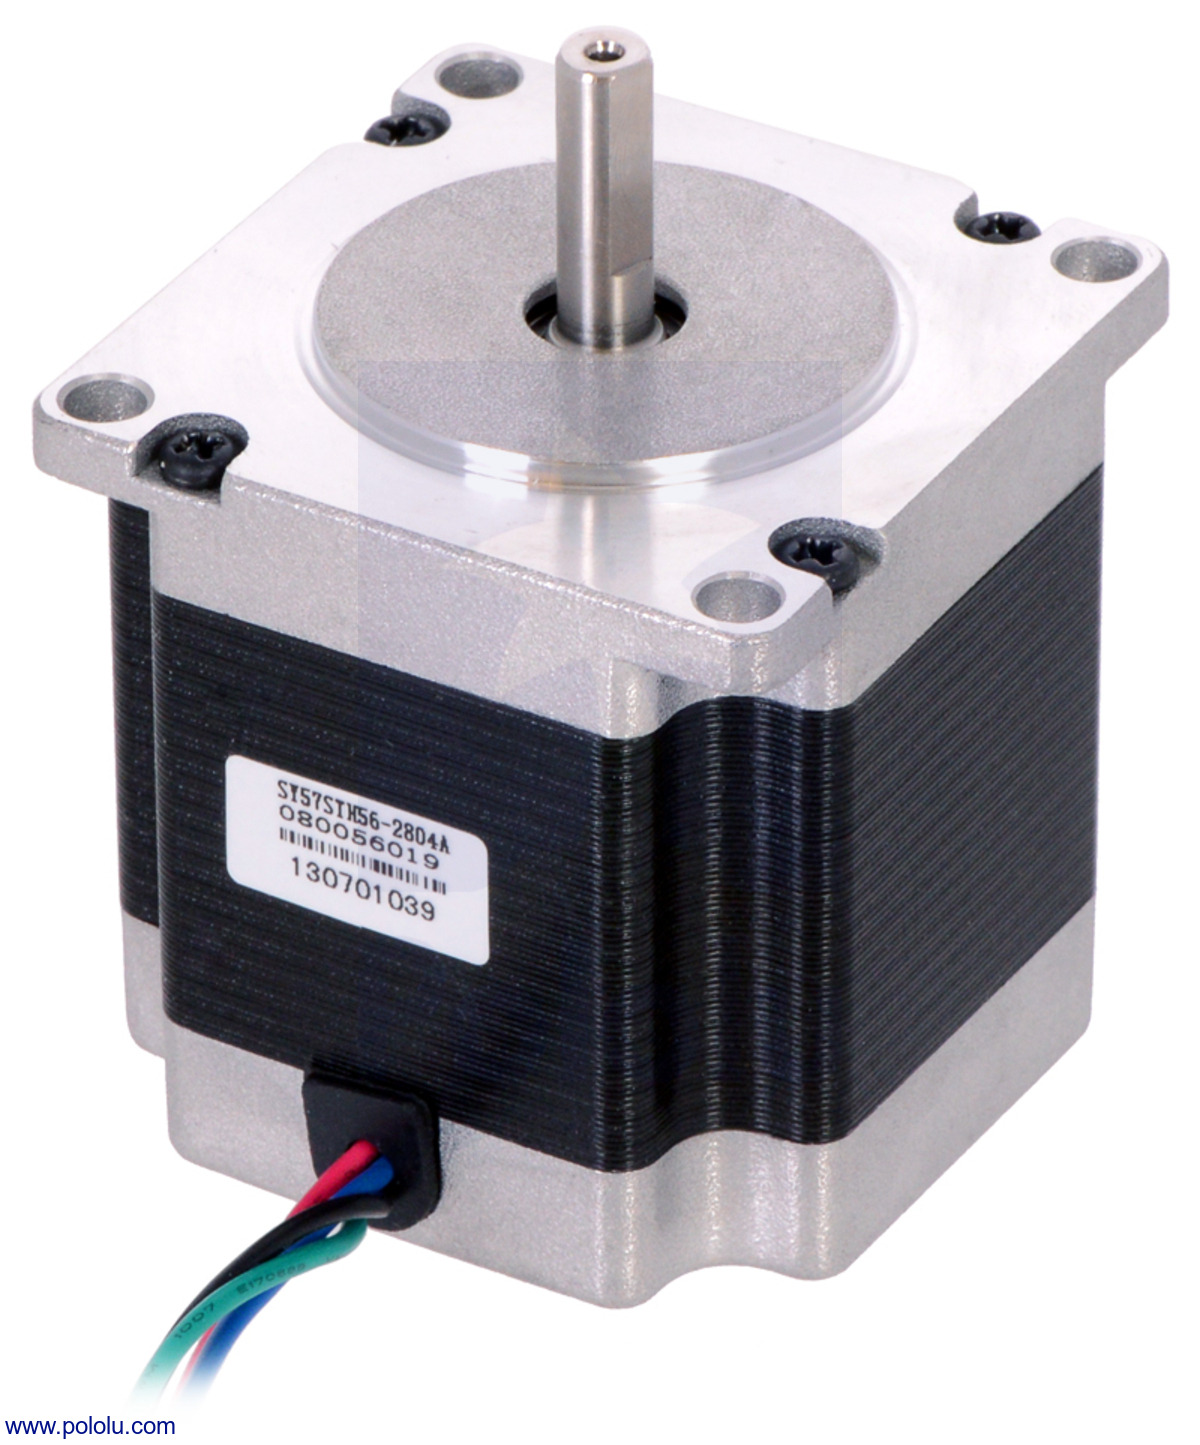 Pololu Stepper Motor Bipolar 200 Steps Rev 57 56mm 2